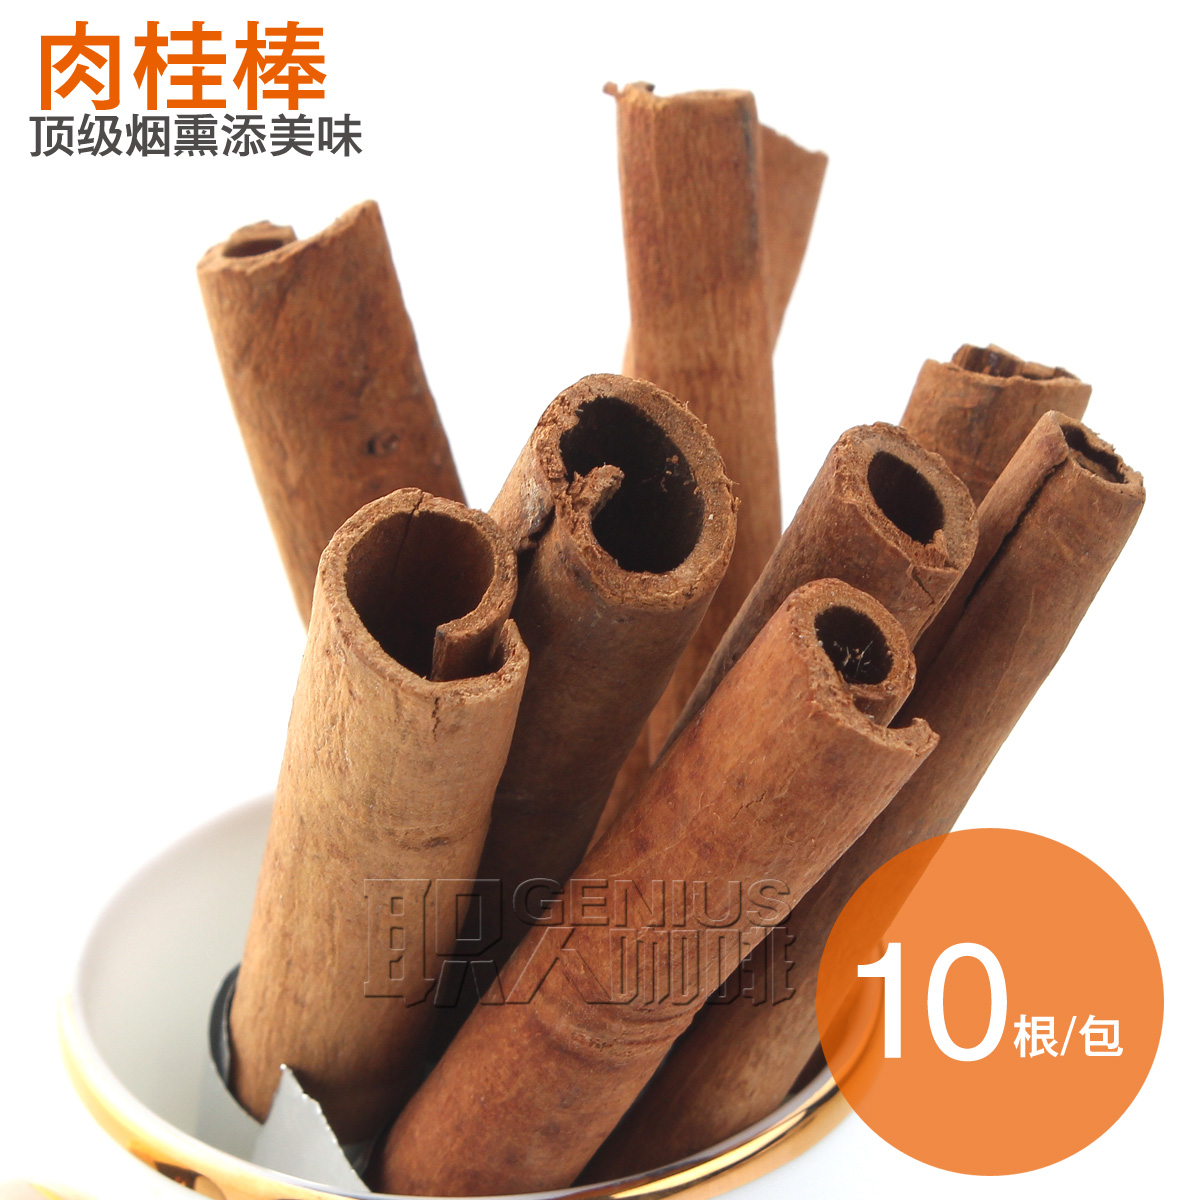 100G Top cinnamon stick smoked xylocinnamoumum strip smoke cinnamon stick coffee proportionating natural free shipping 2015